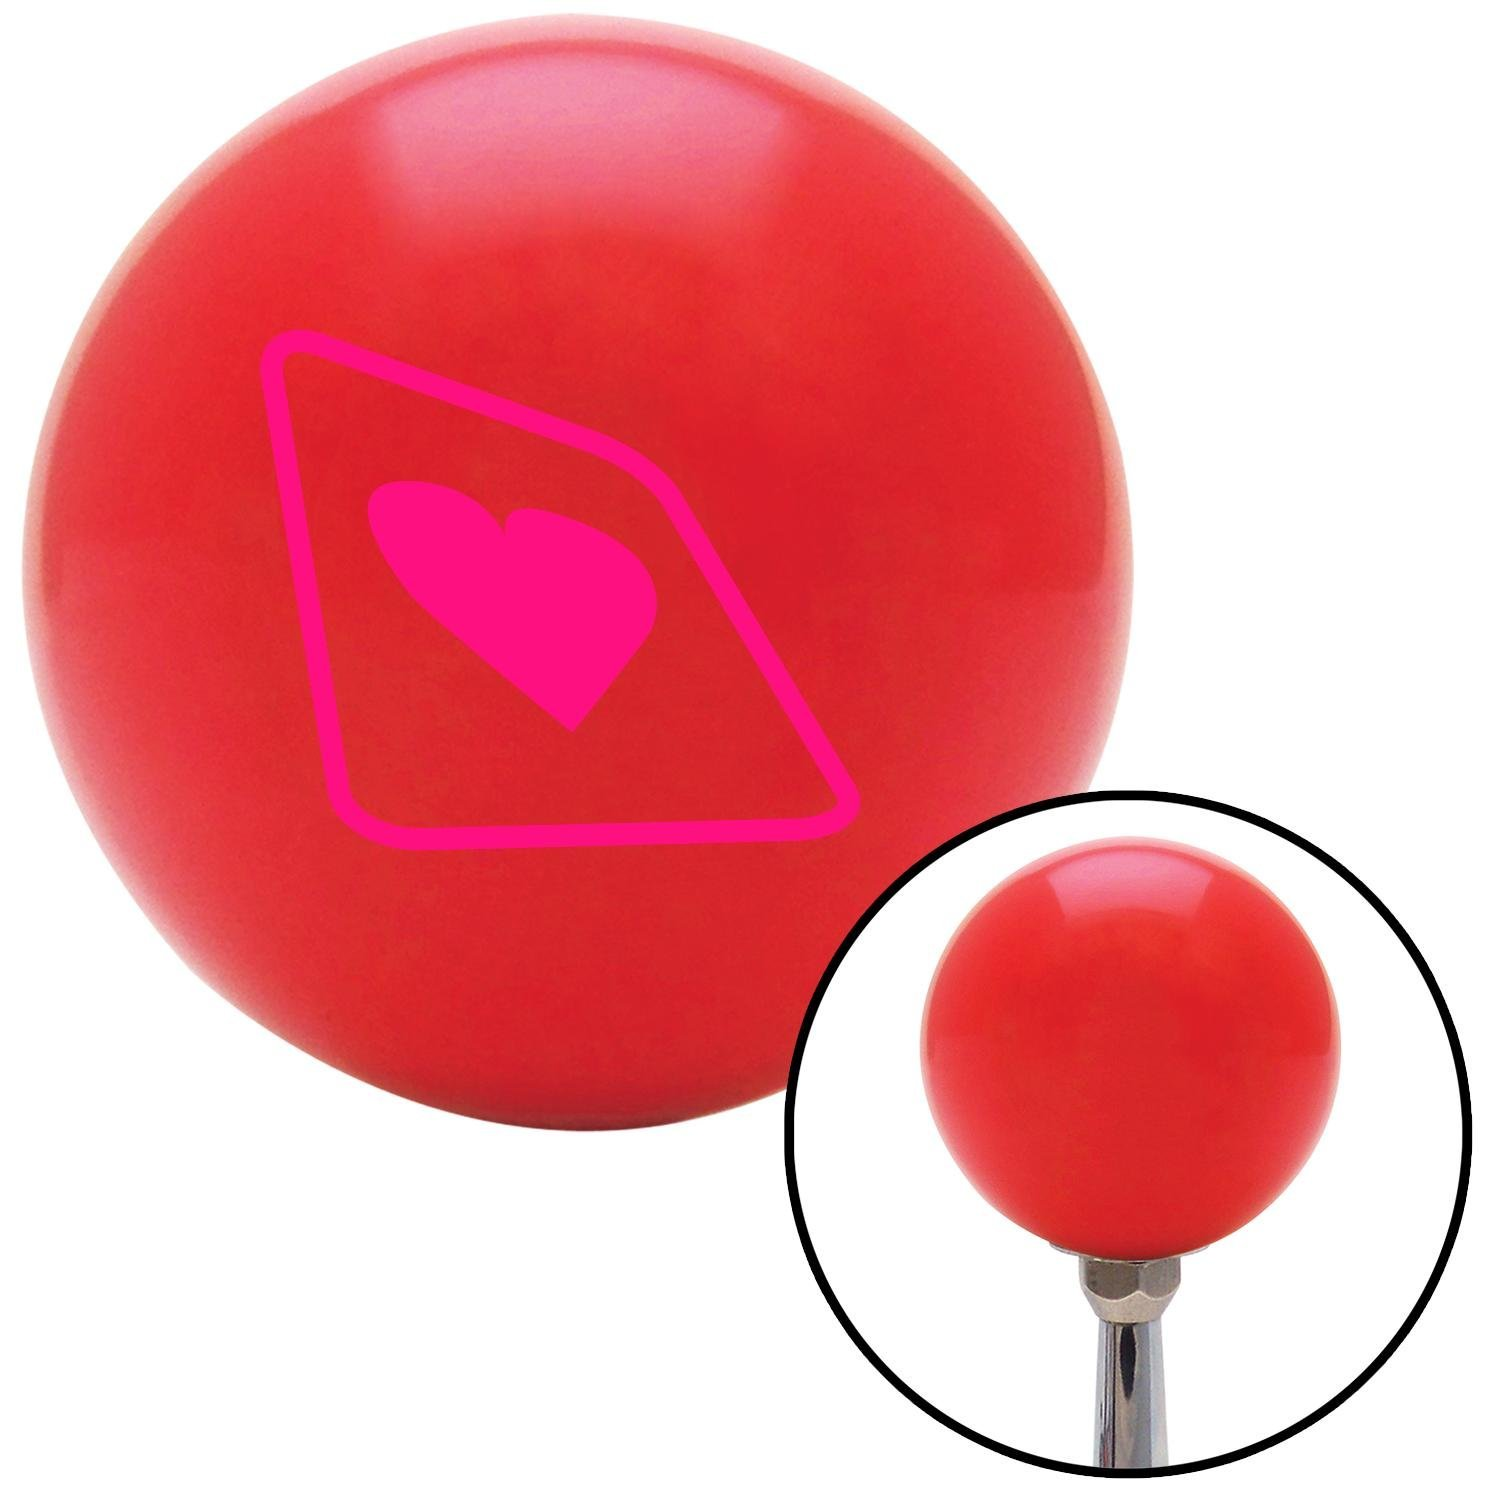 American Shifter 94895 Red Shift Knob with M16 x 1.5 Insert Pink Heart on a Card